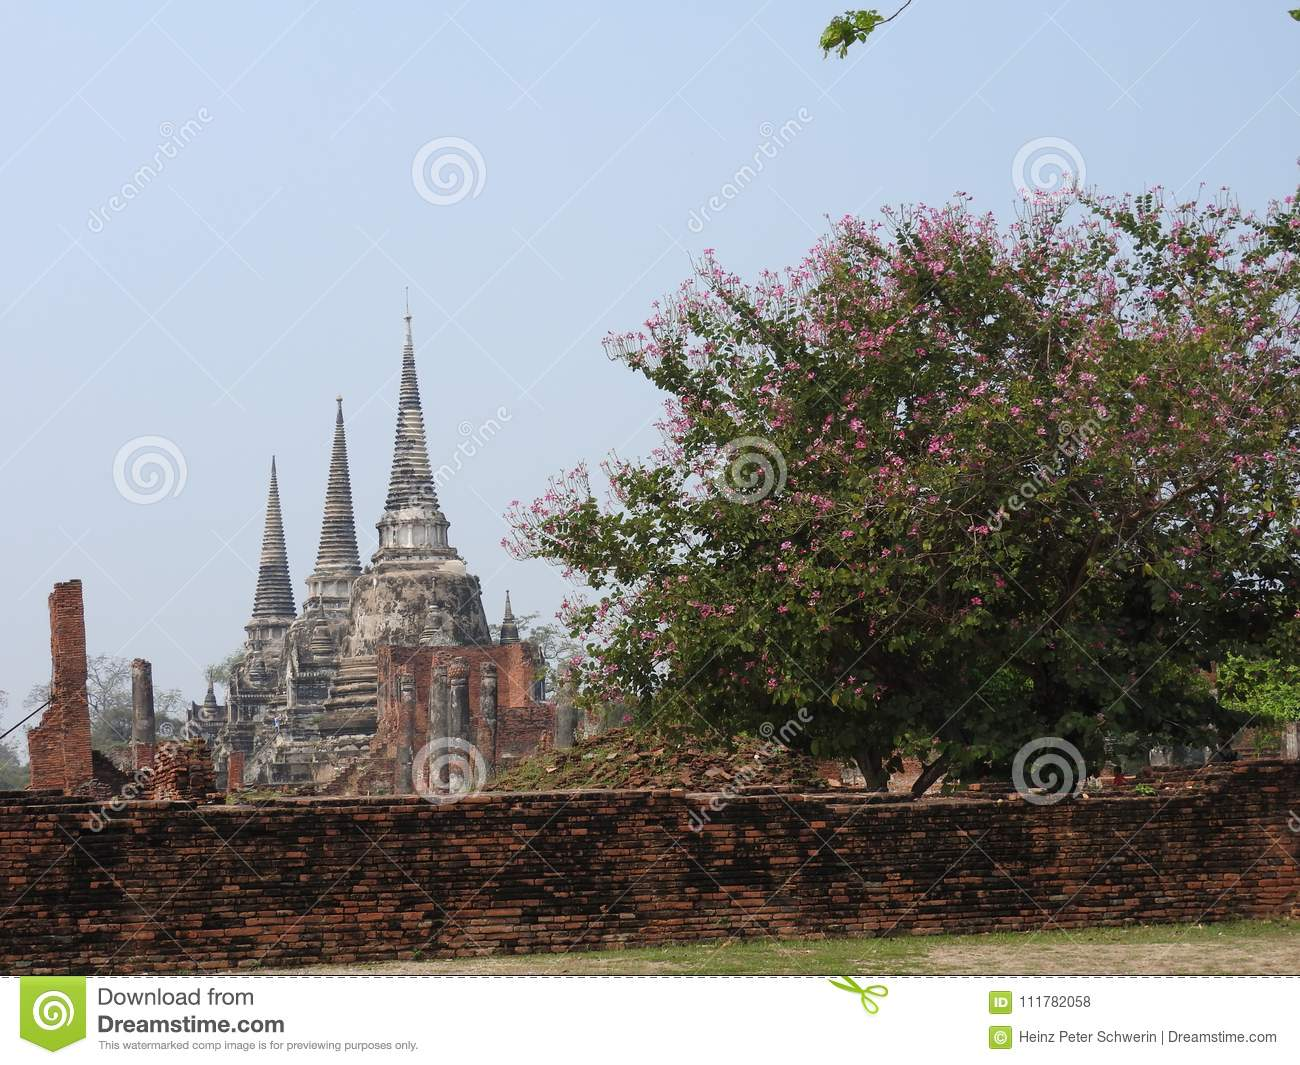 Ayutthaya capital of the Kingdom of Siam